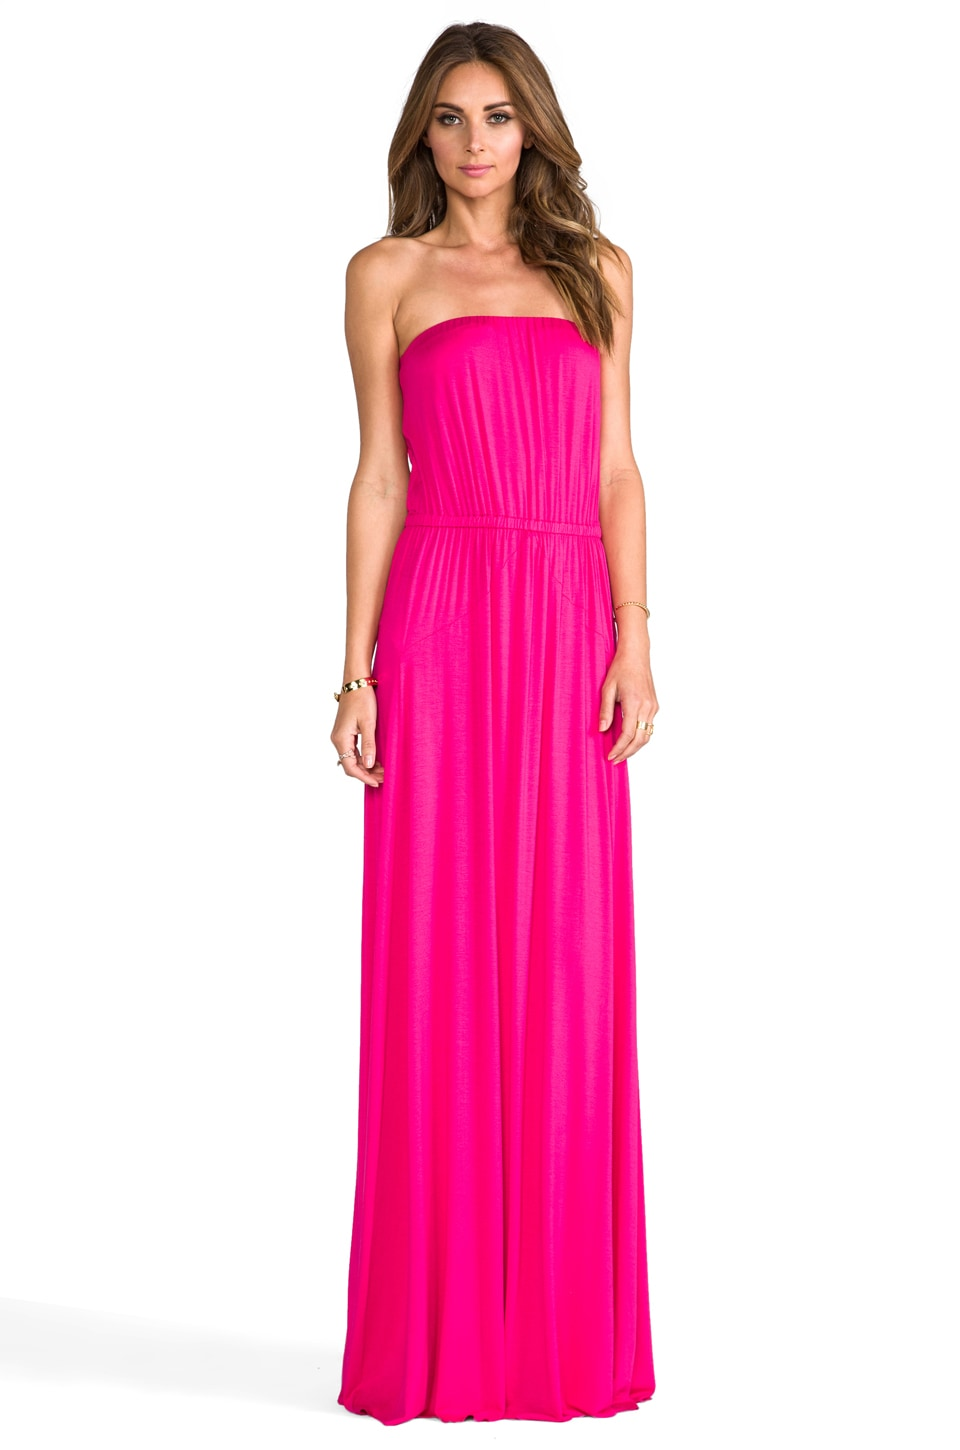 Rachel Pally Clea Dress in Cerise